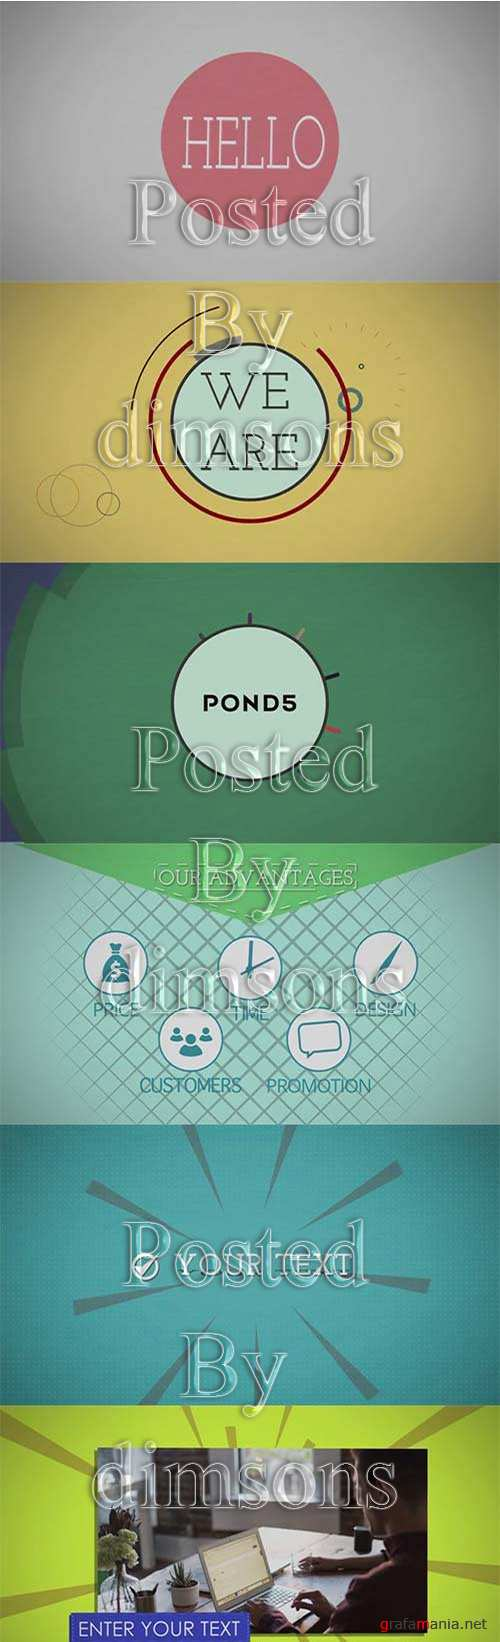 Promote Your Product - 068952093 - Pond5